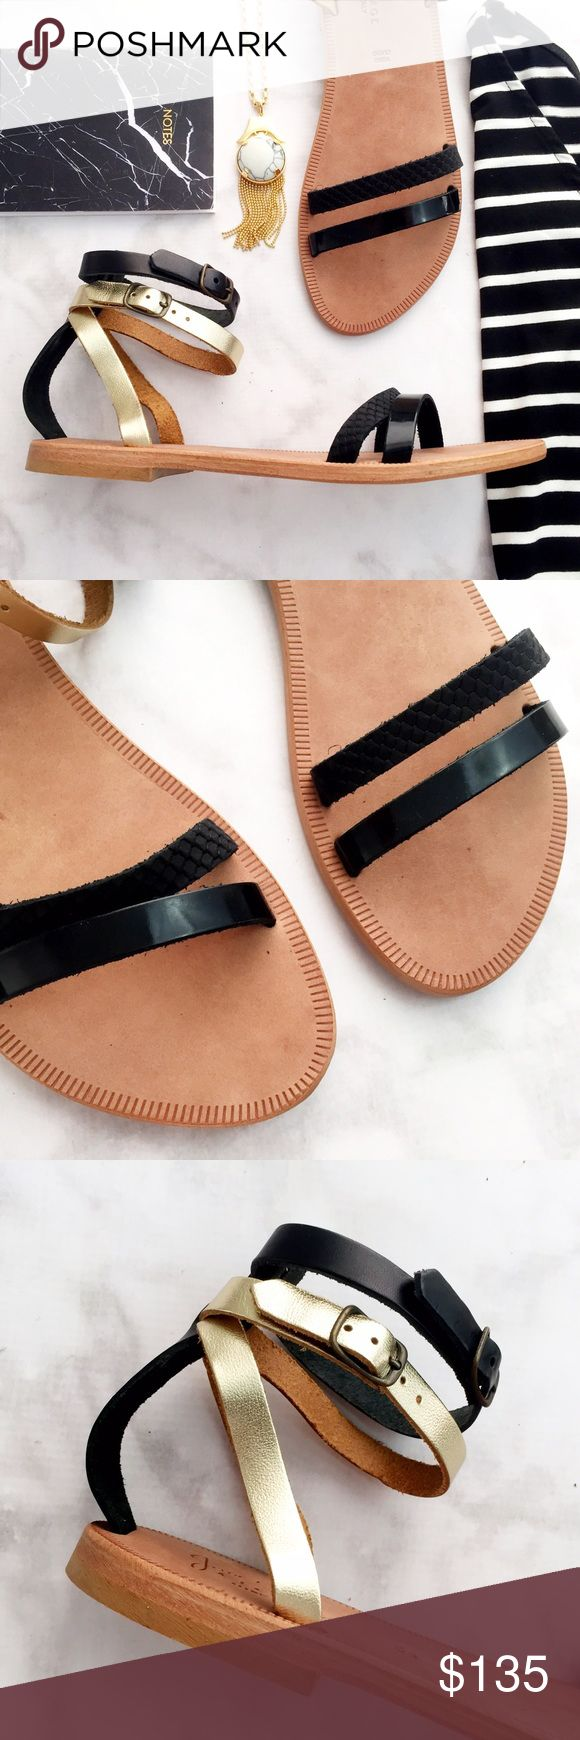 Black and Gold Strappy Flat Sandals Details: * Size 39/9 * Black patent leather and embossed leather straps across the toes * Black and gold straps around the ankles * Brand new in box 06211608 Joie Shoes Sandals